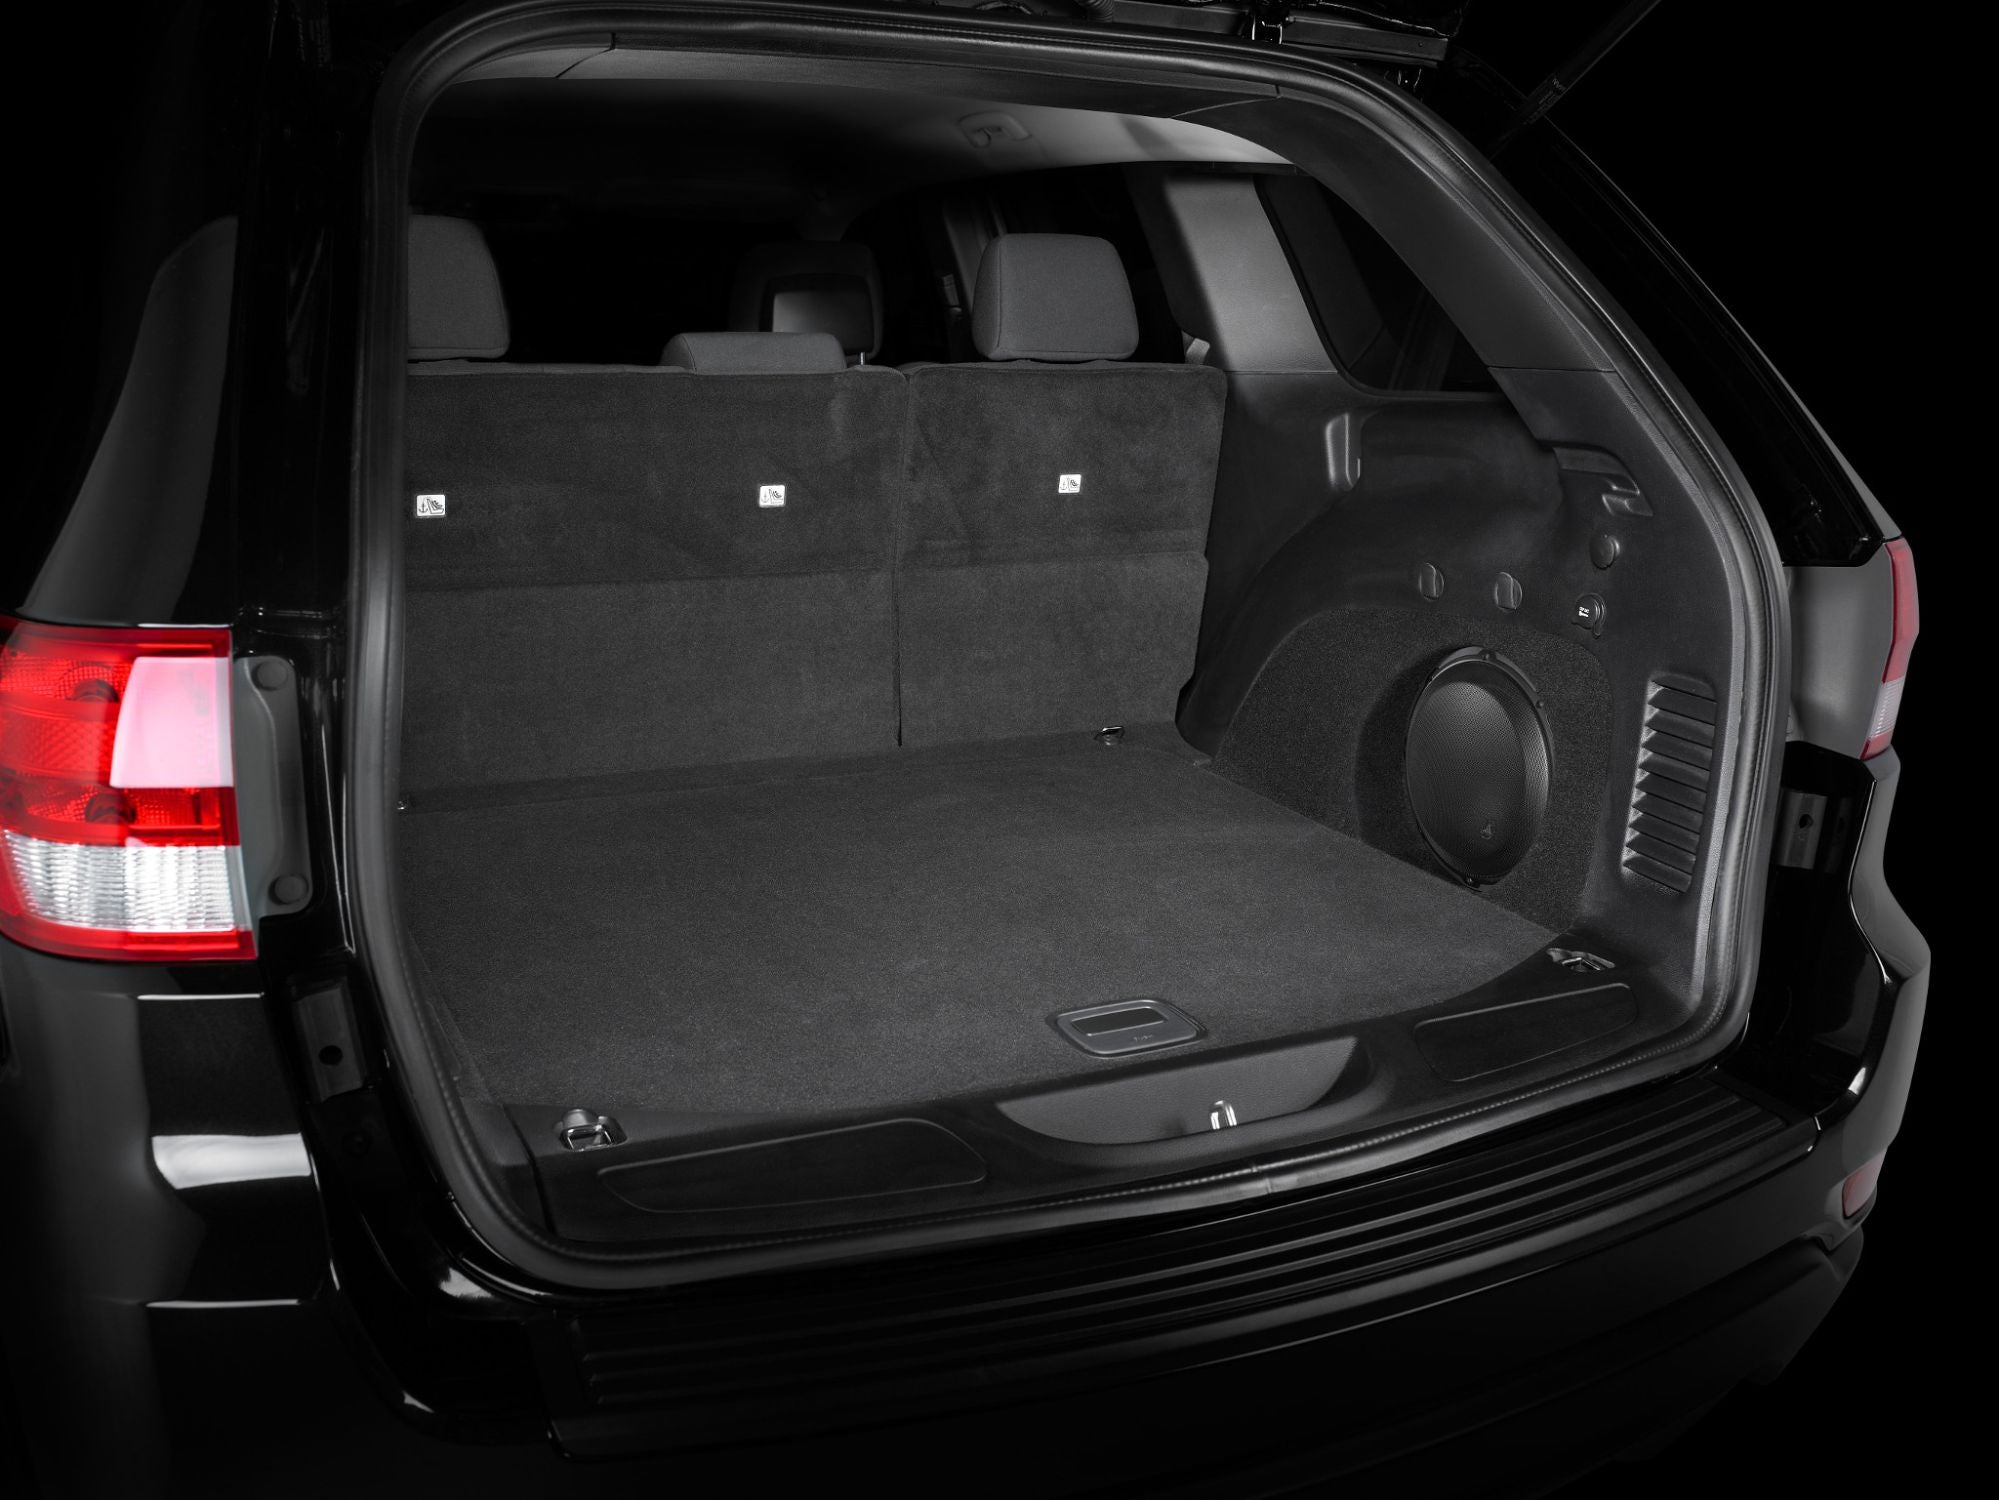 SB-J-GCHWK2-10W3v3 Stealthbox Installed in Vehicle